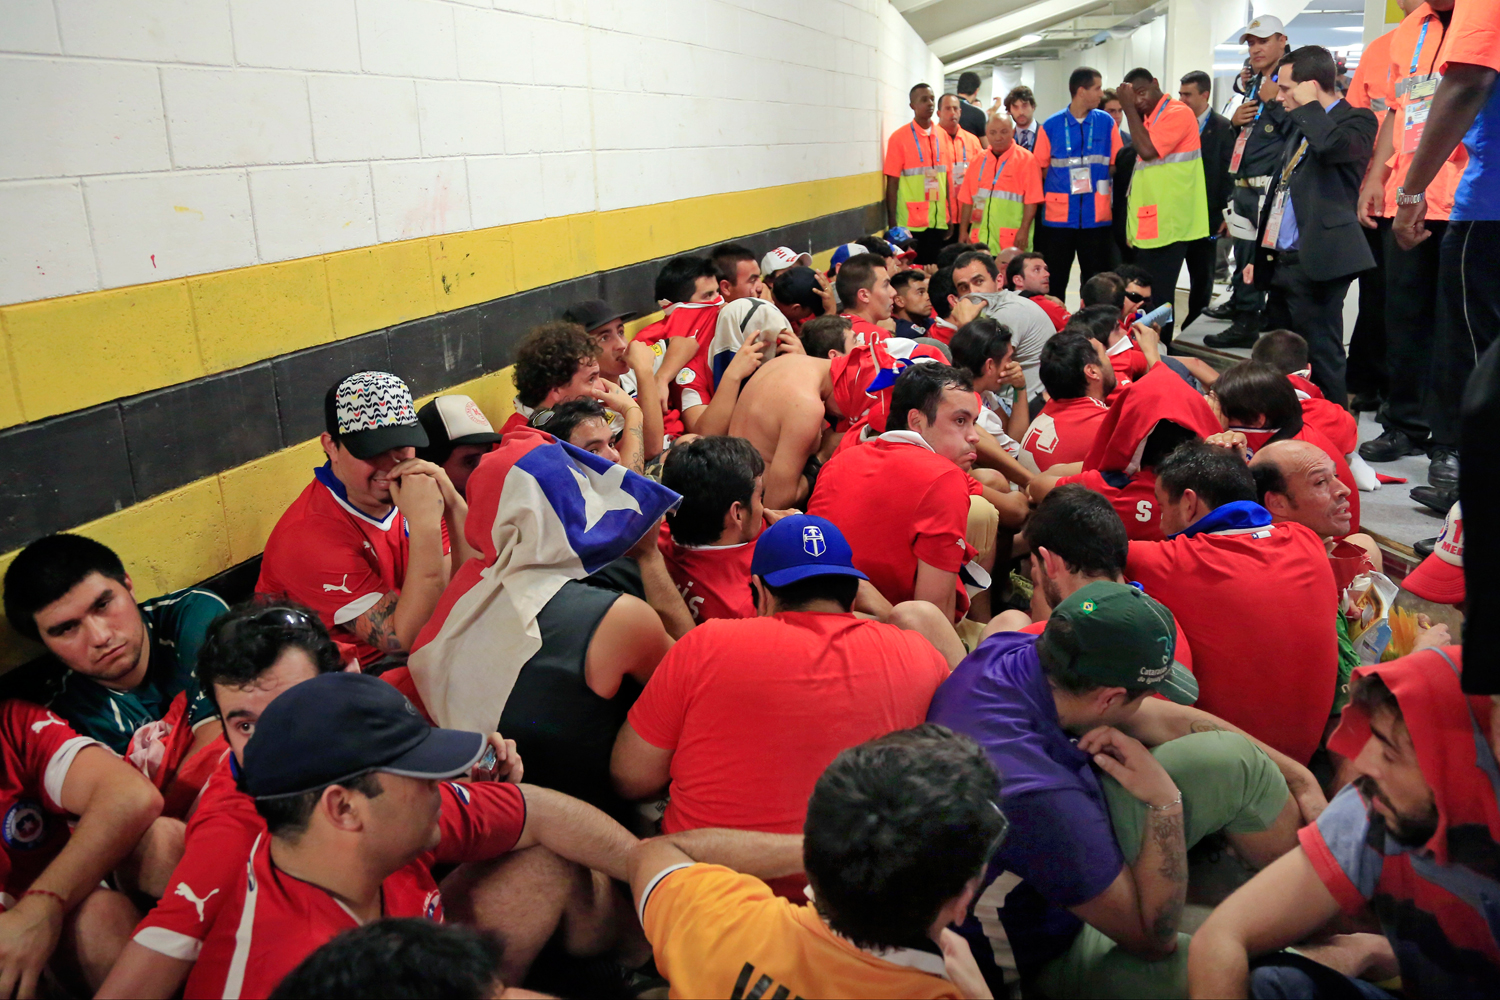 Chilean fans are surrounded by security personnel after breaking into Maracana Stadium before the group B World Cup soccer match between Spain and Chile